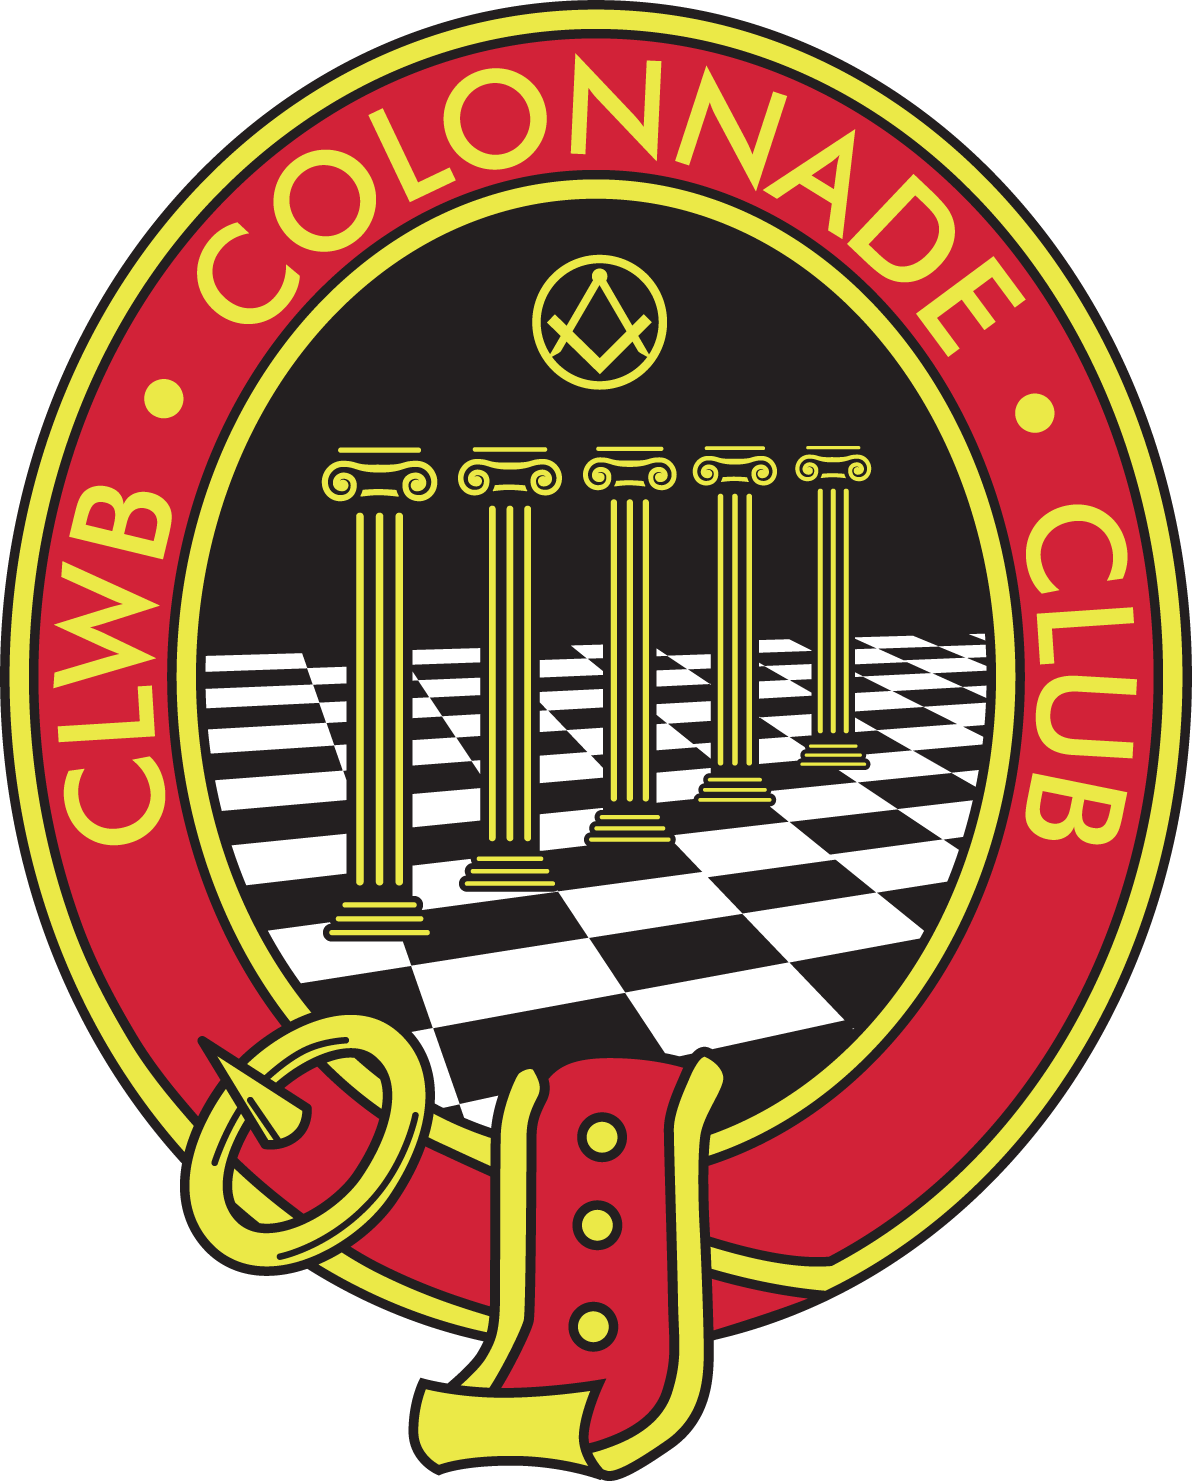 The Colonnade Club